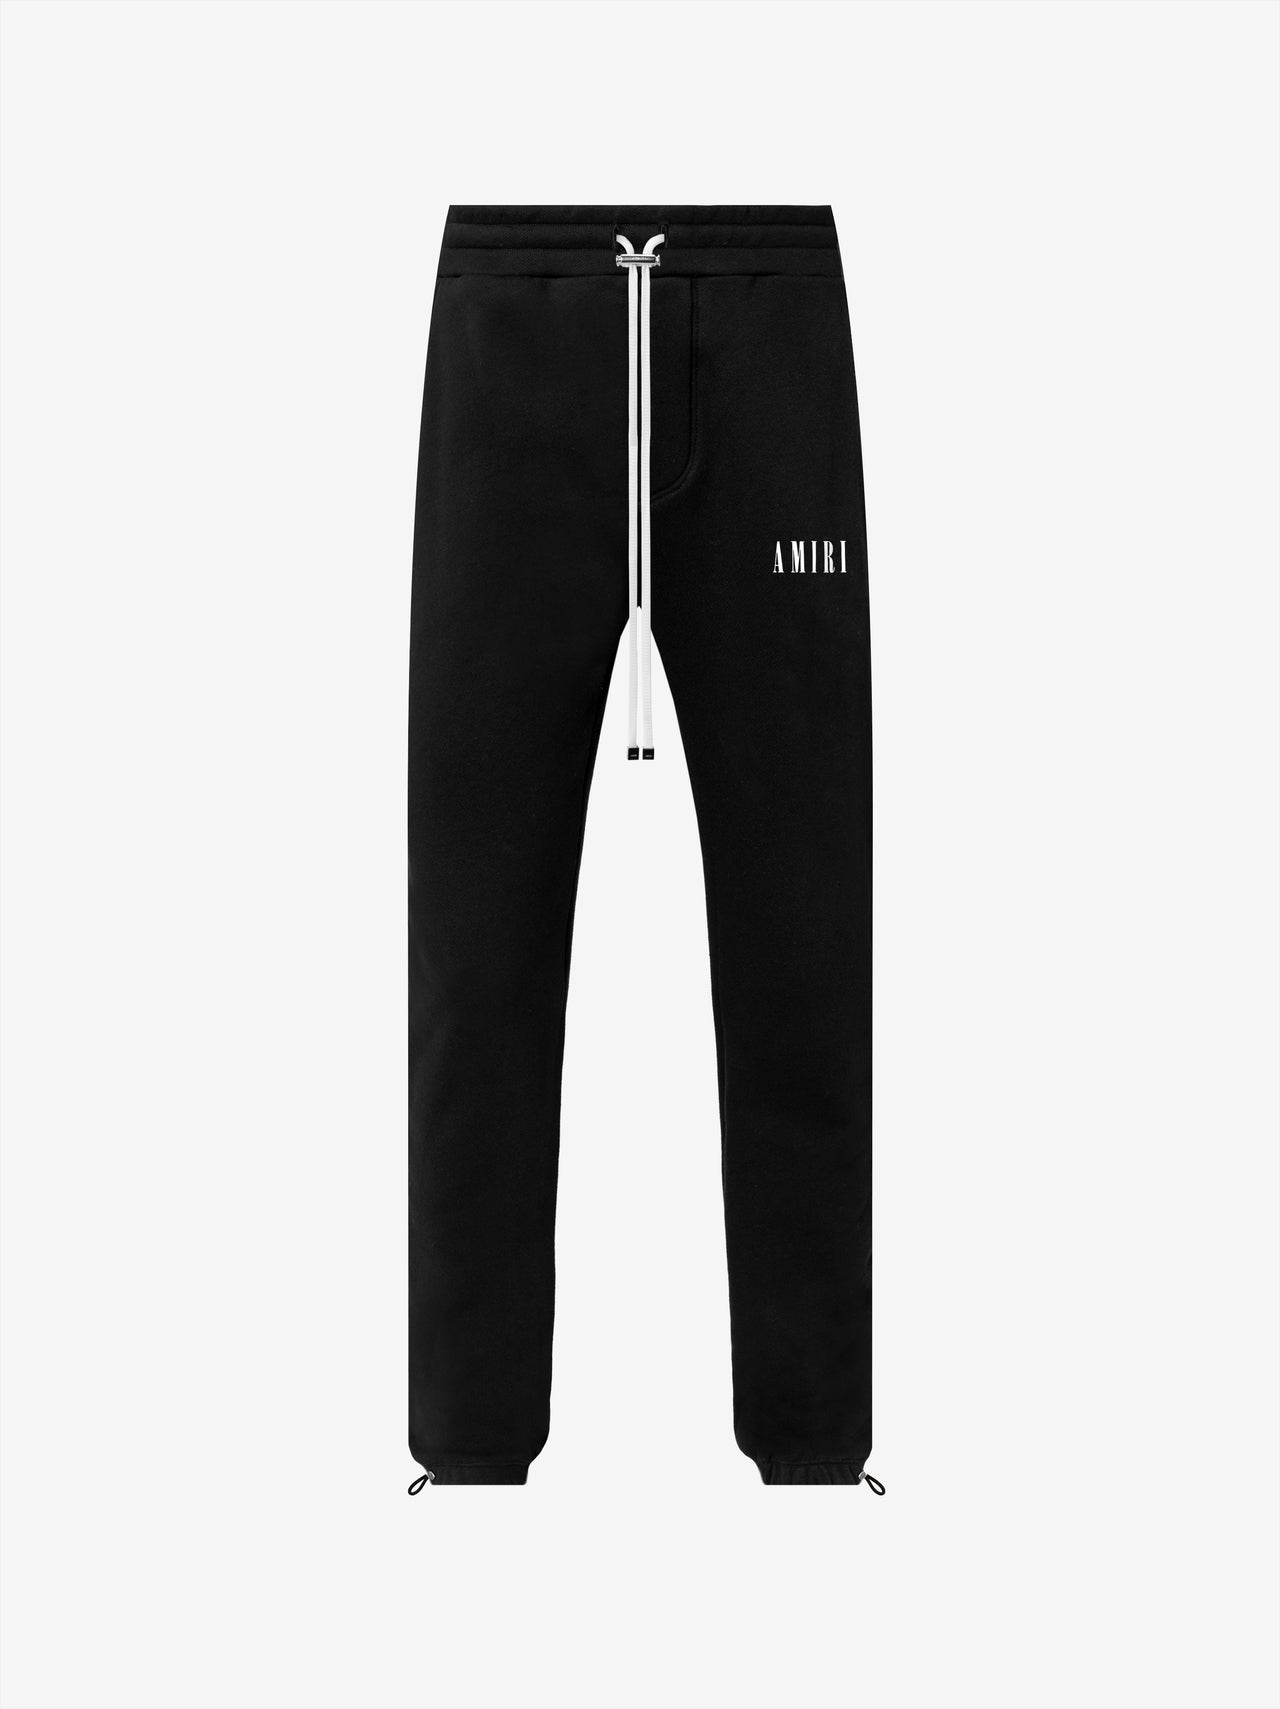 AMIRI CORE LOGO SWEATPANT - BLACK